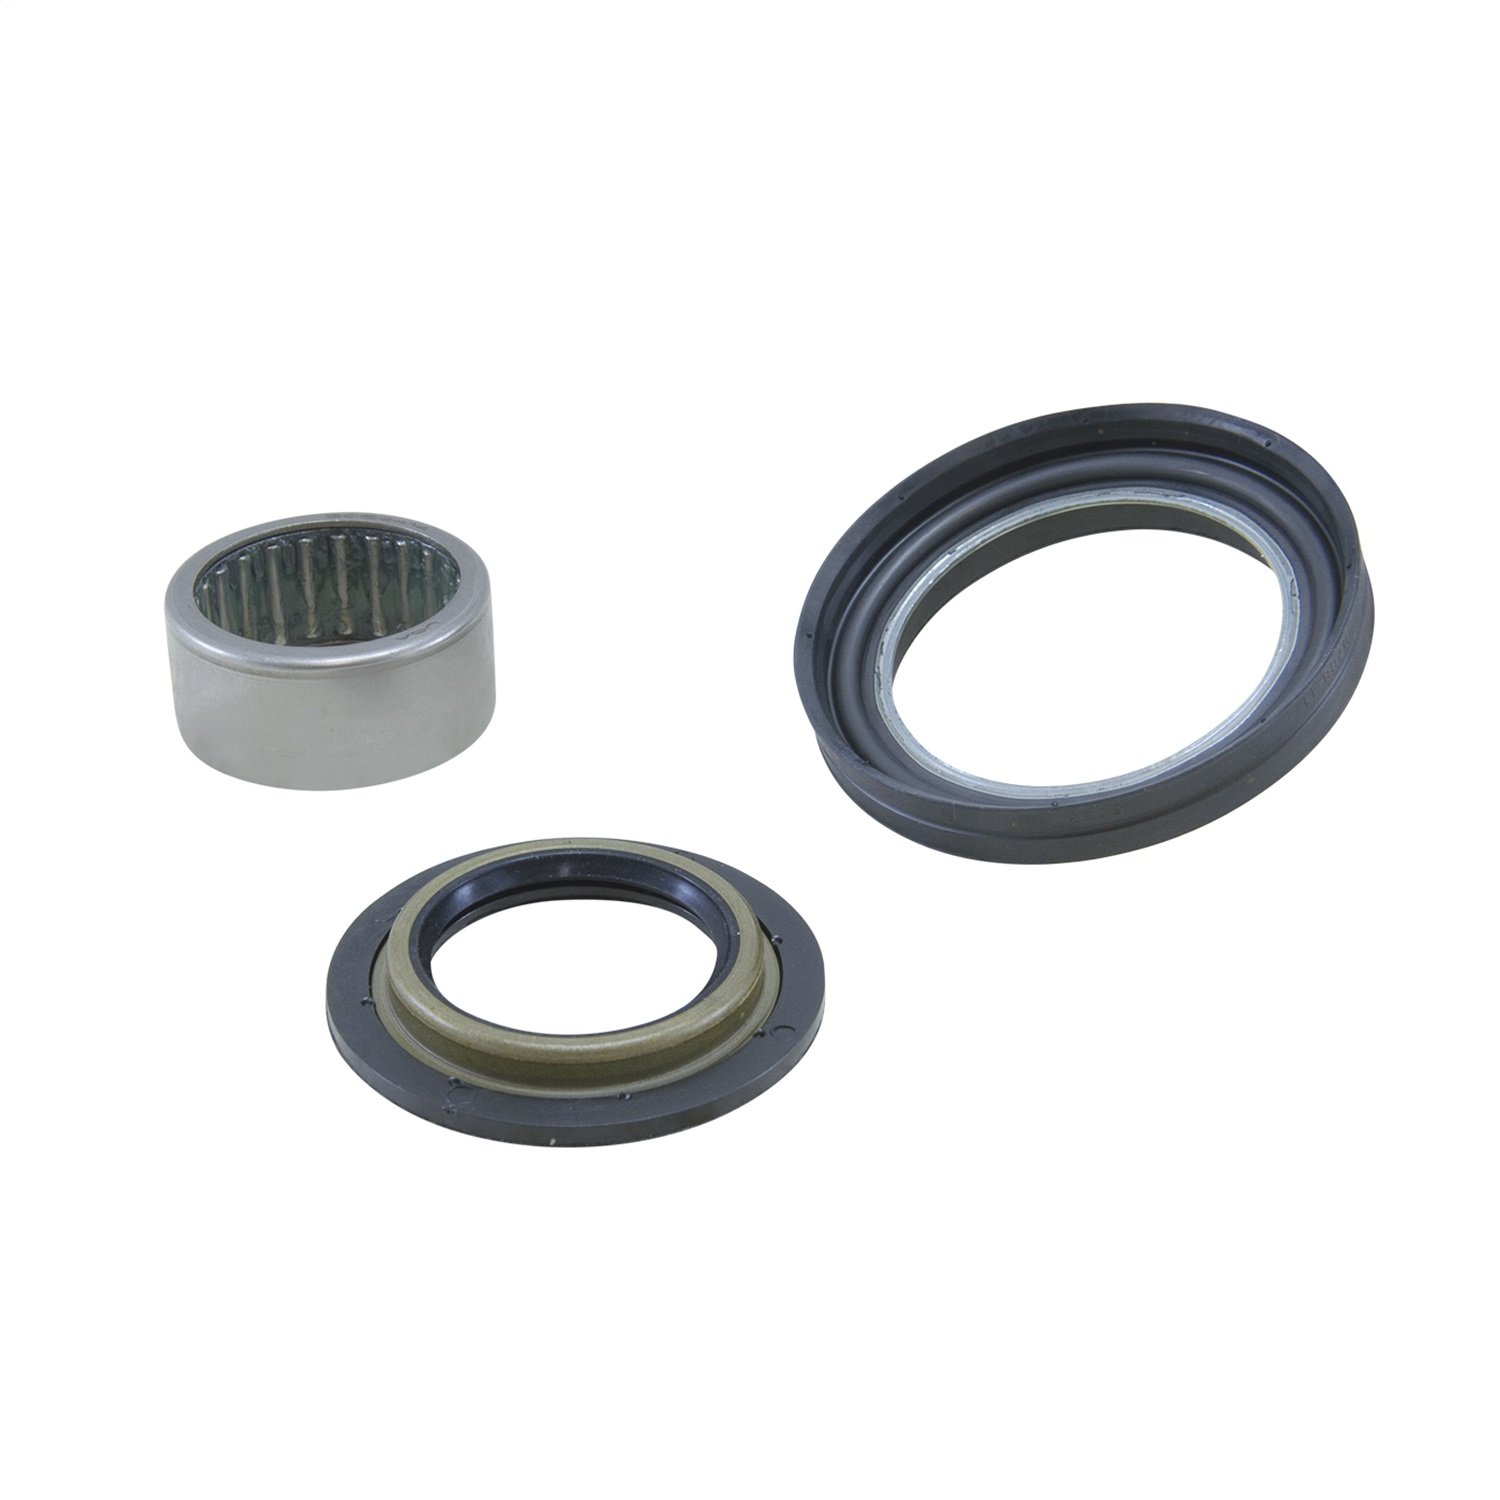 Yukon (YSPSP-028) Spindle Bearing and Seal Kit for Ford Dana 60 Differential Yukon Gear